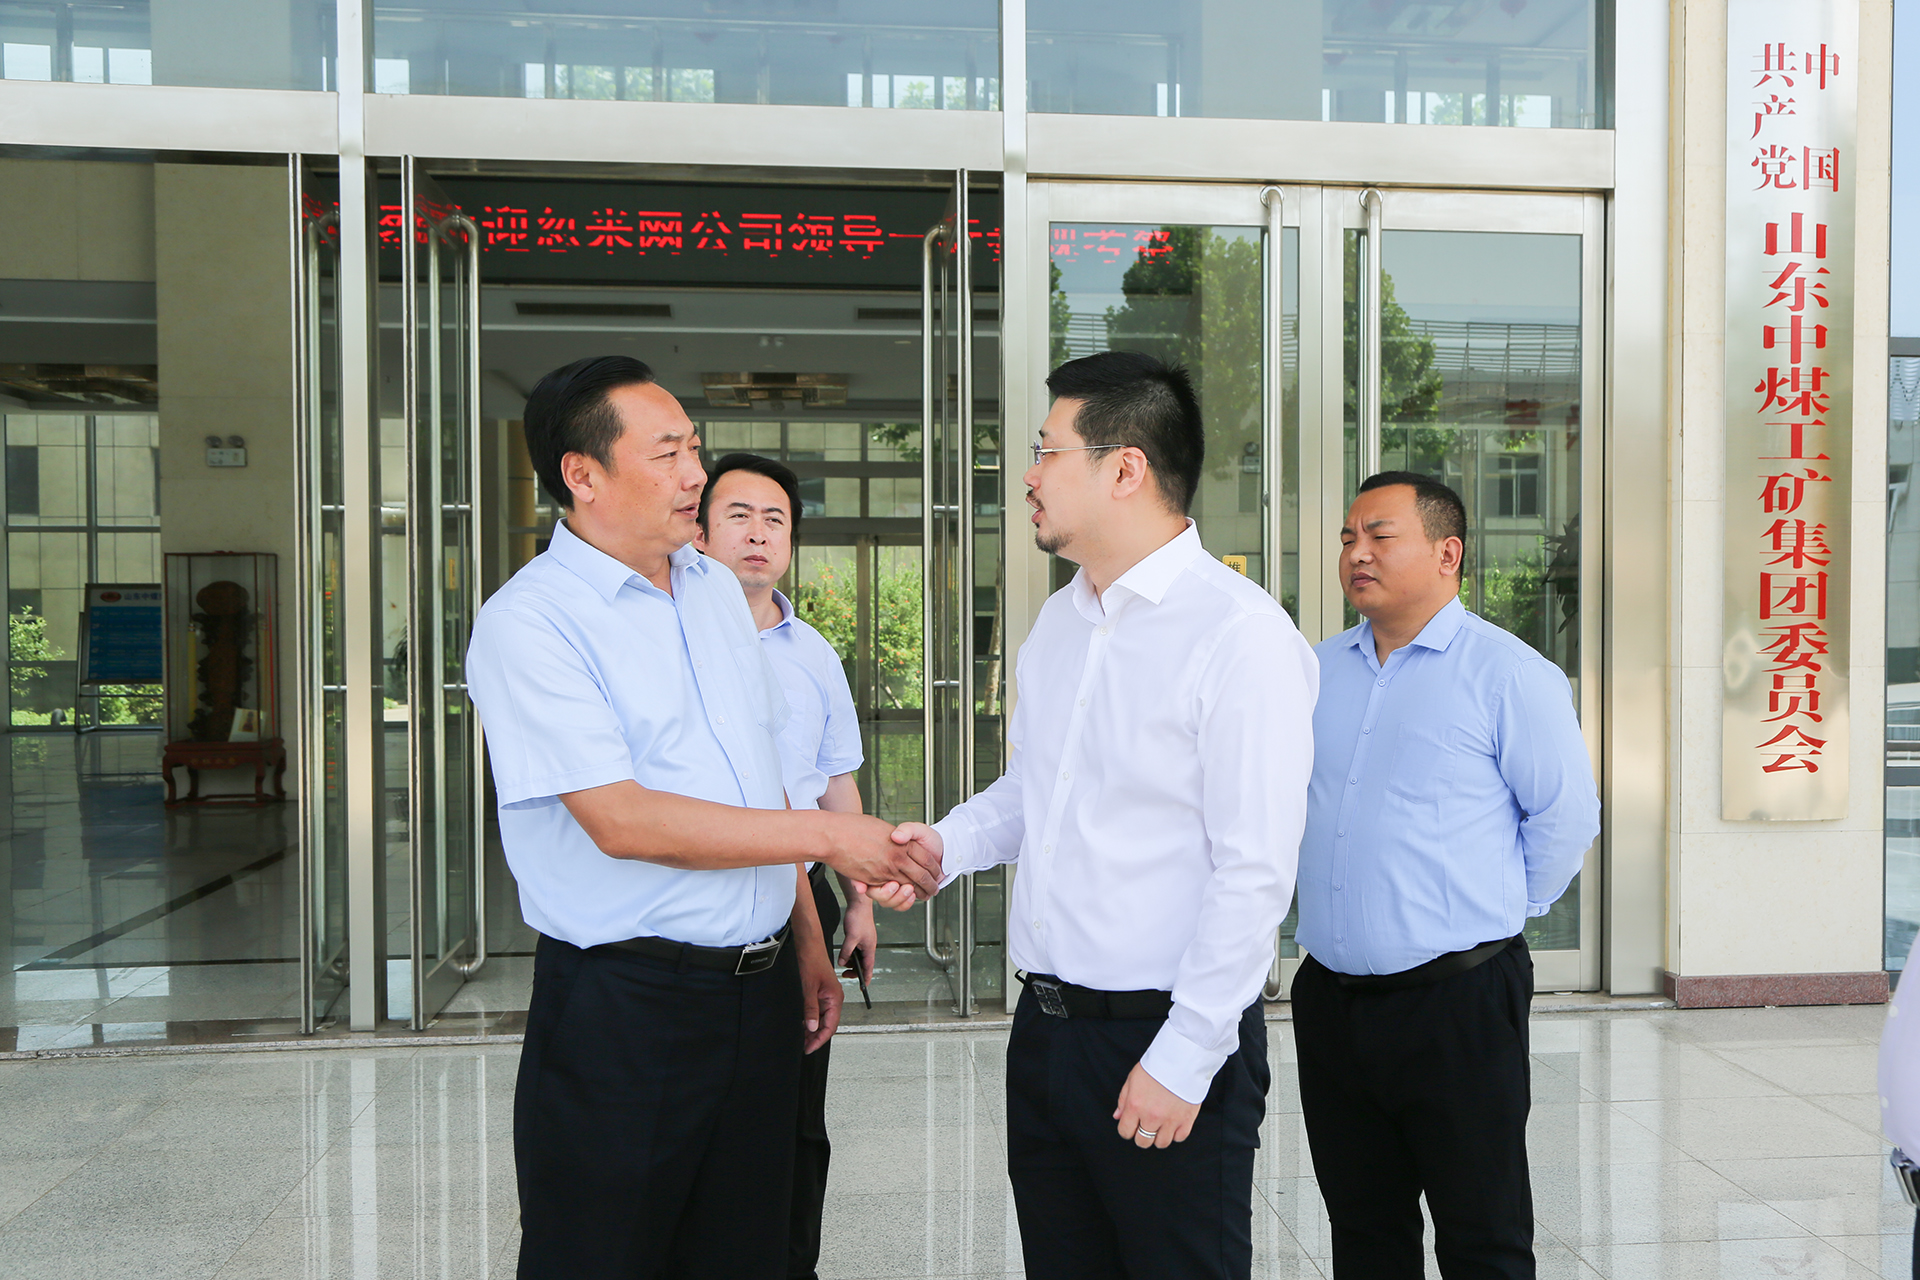 Warmly Welcome The Leader of Humi.com To Visit Shandong Tiandun